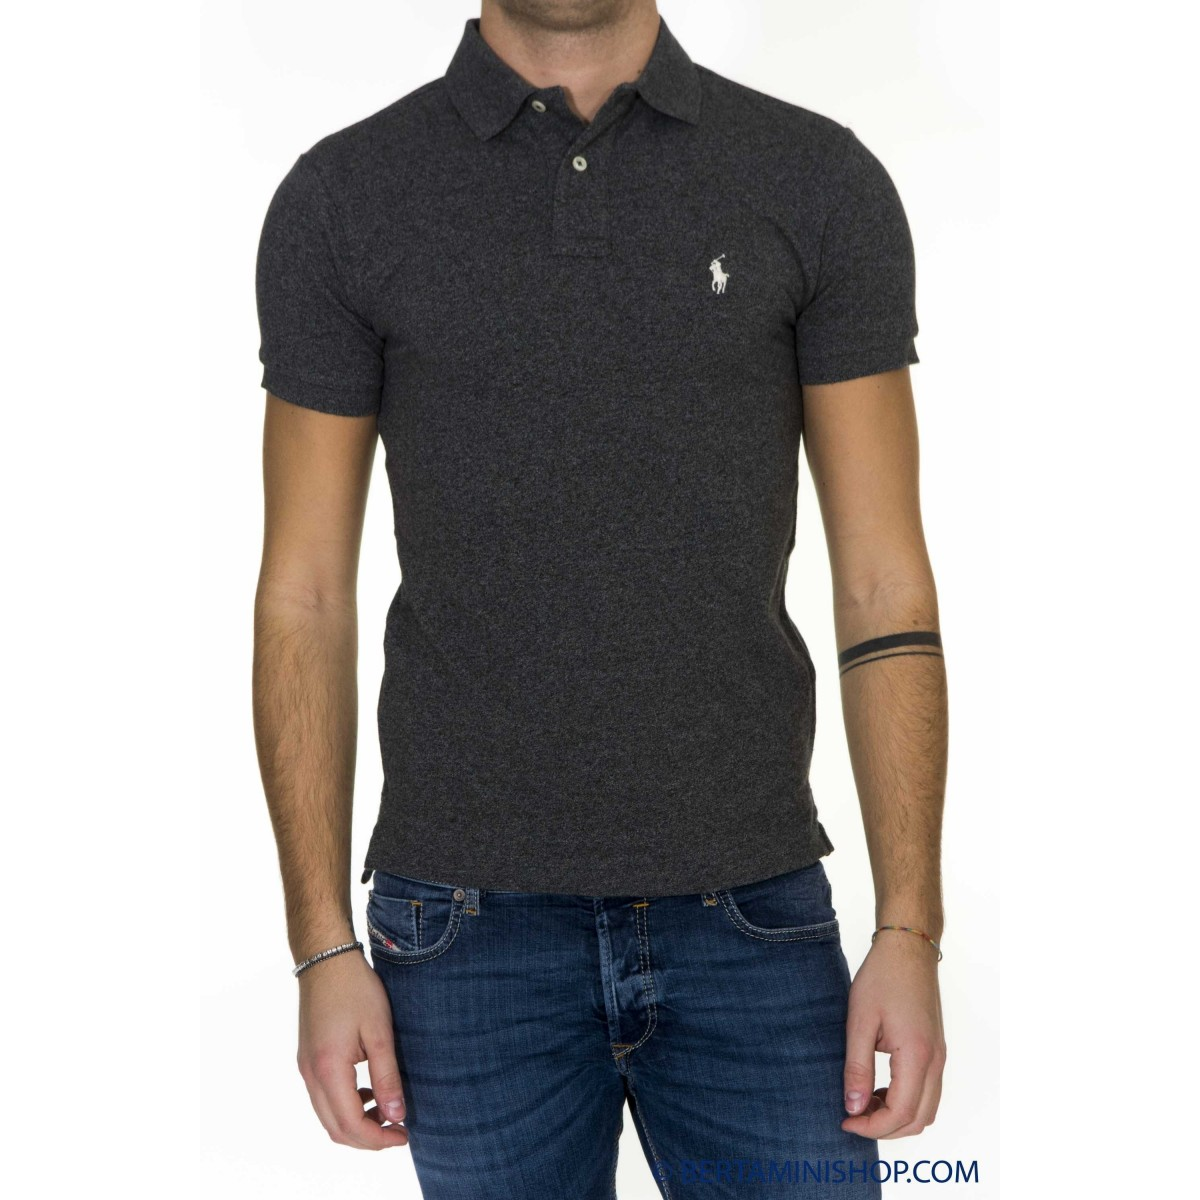 Polo Ralph Lauren Uomo - A12KAA10C8312 Slim Fit A0Z02 - Antracite melange